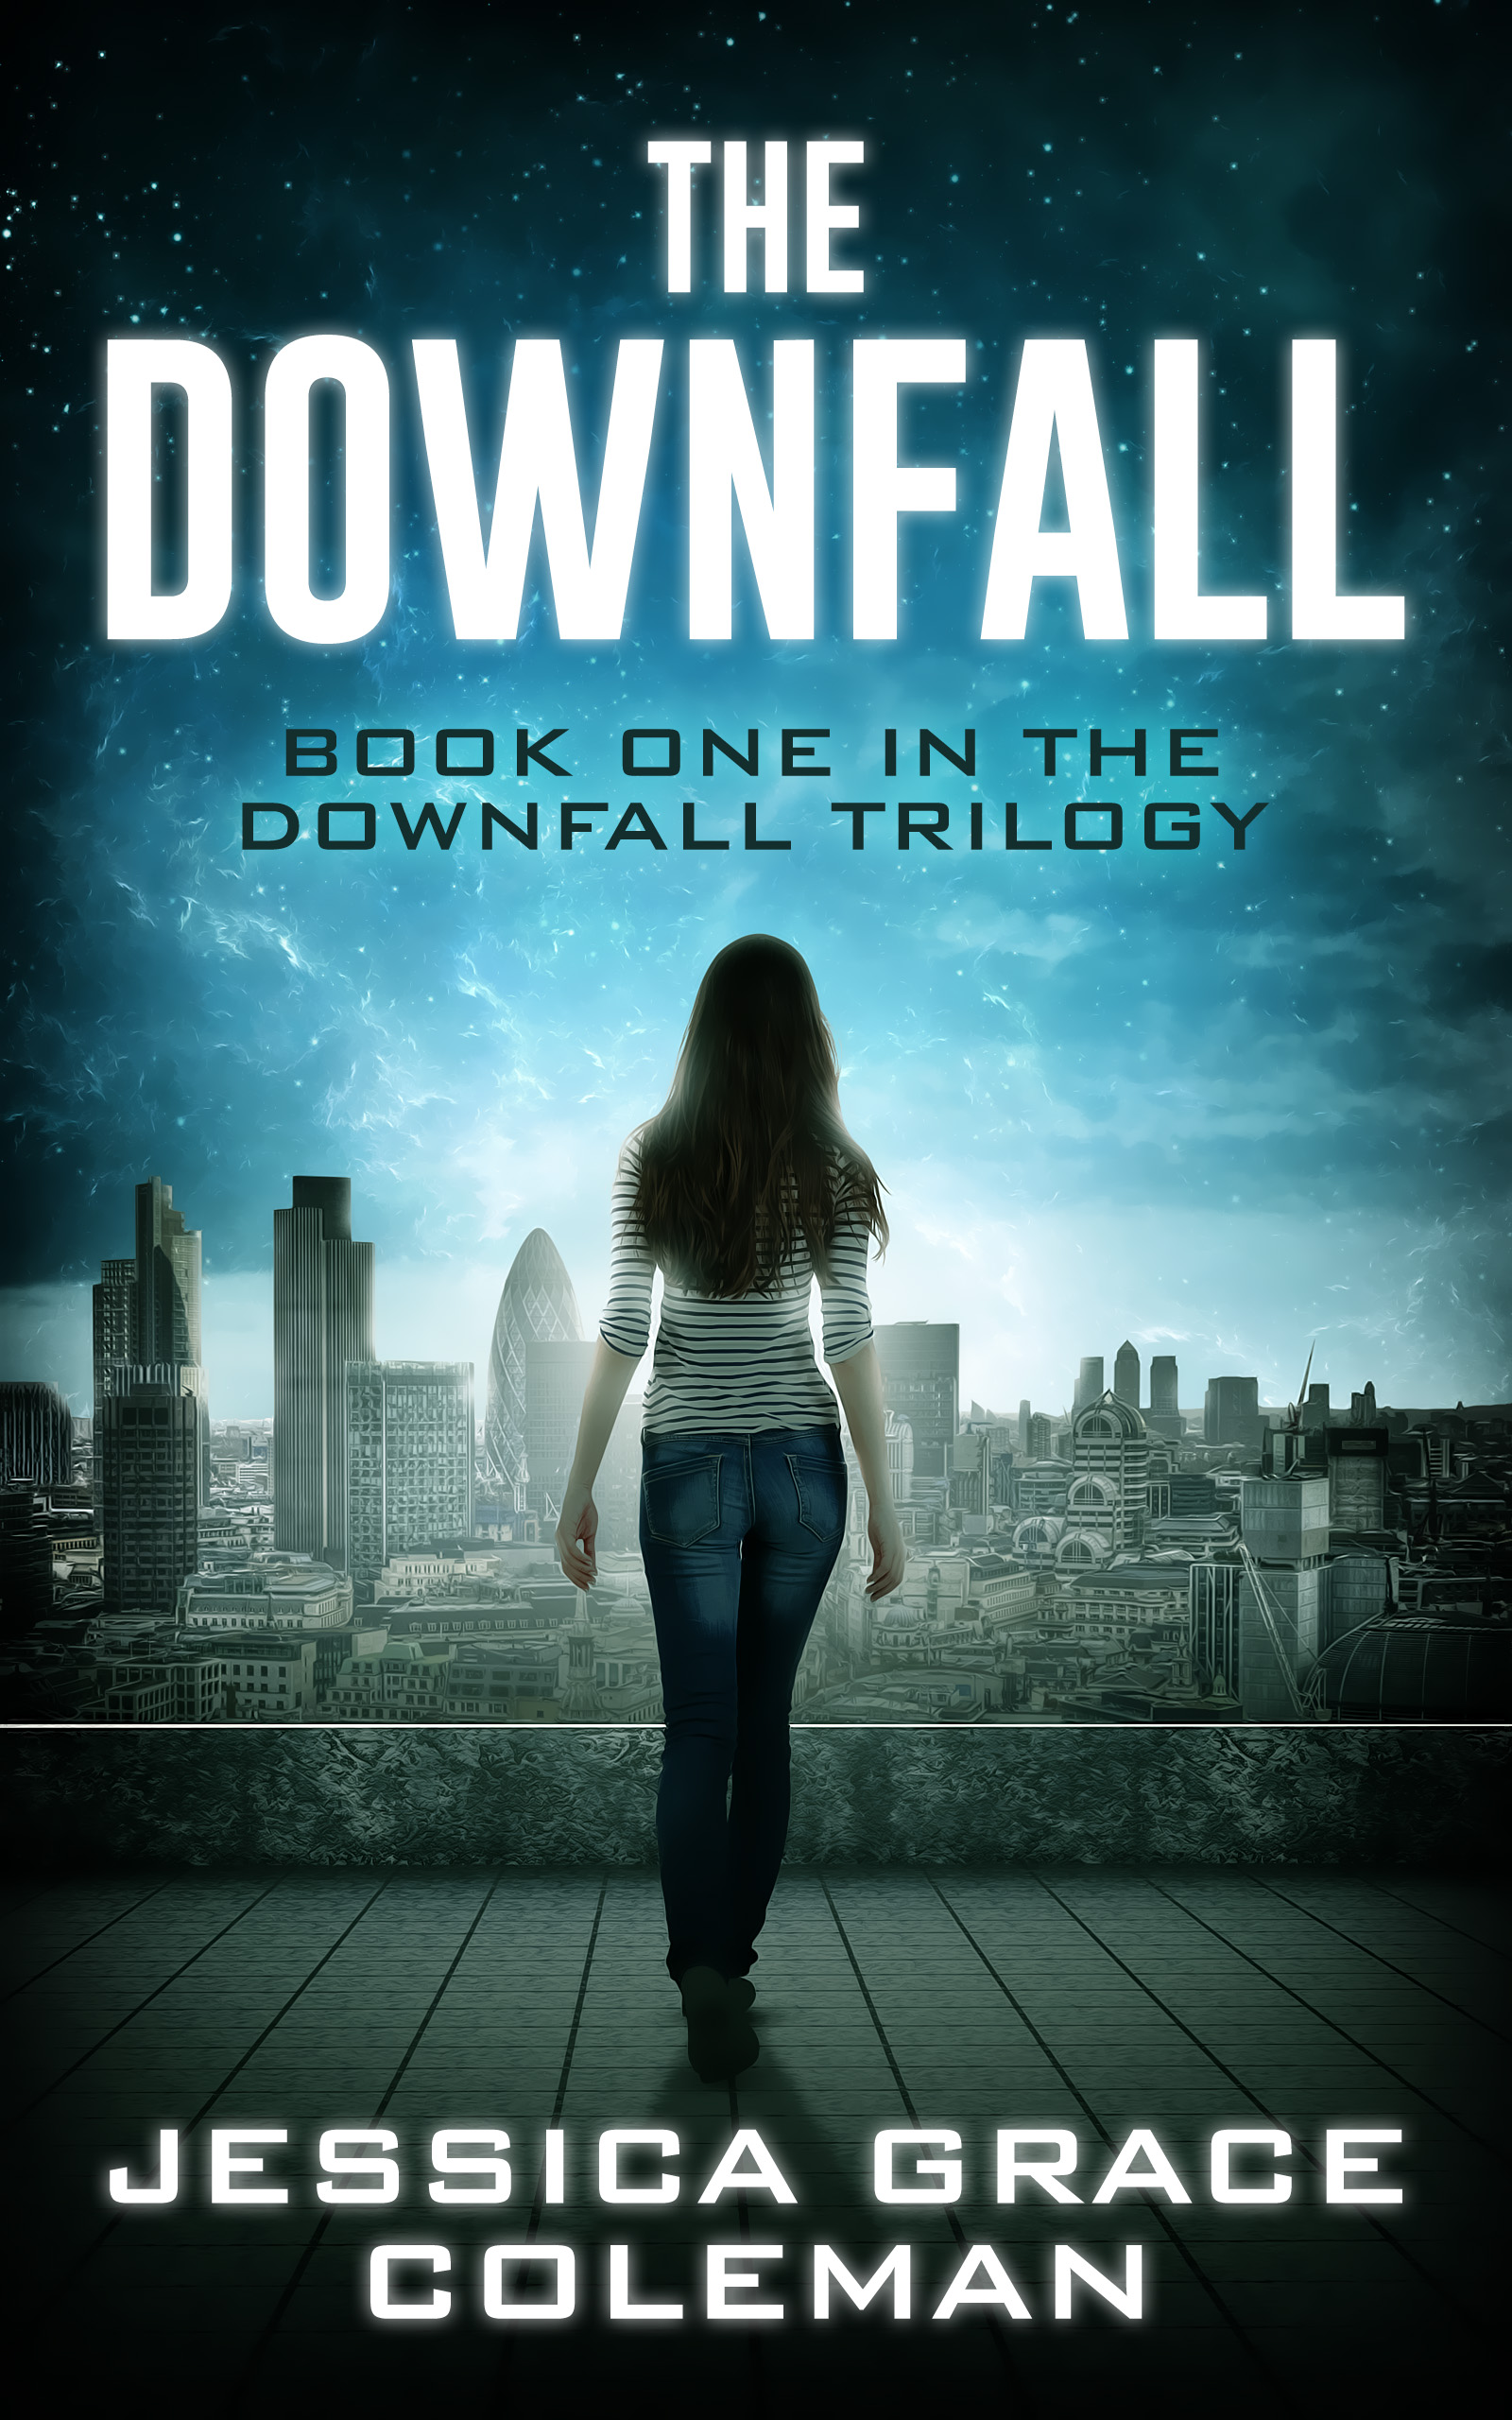 The Downfall by Jessica Grace Coleman